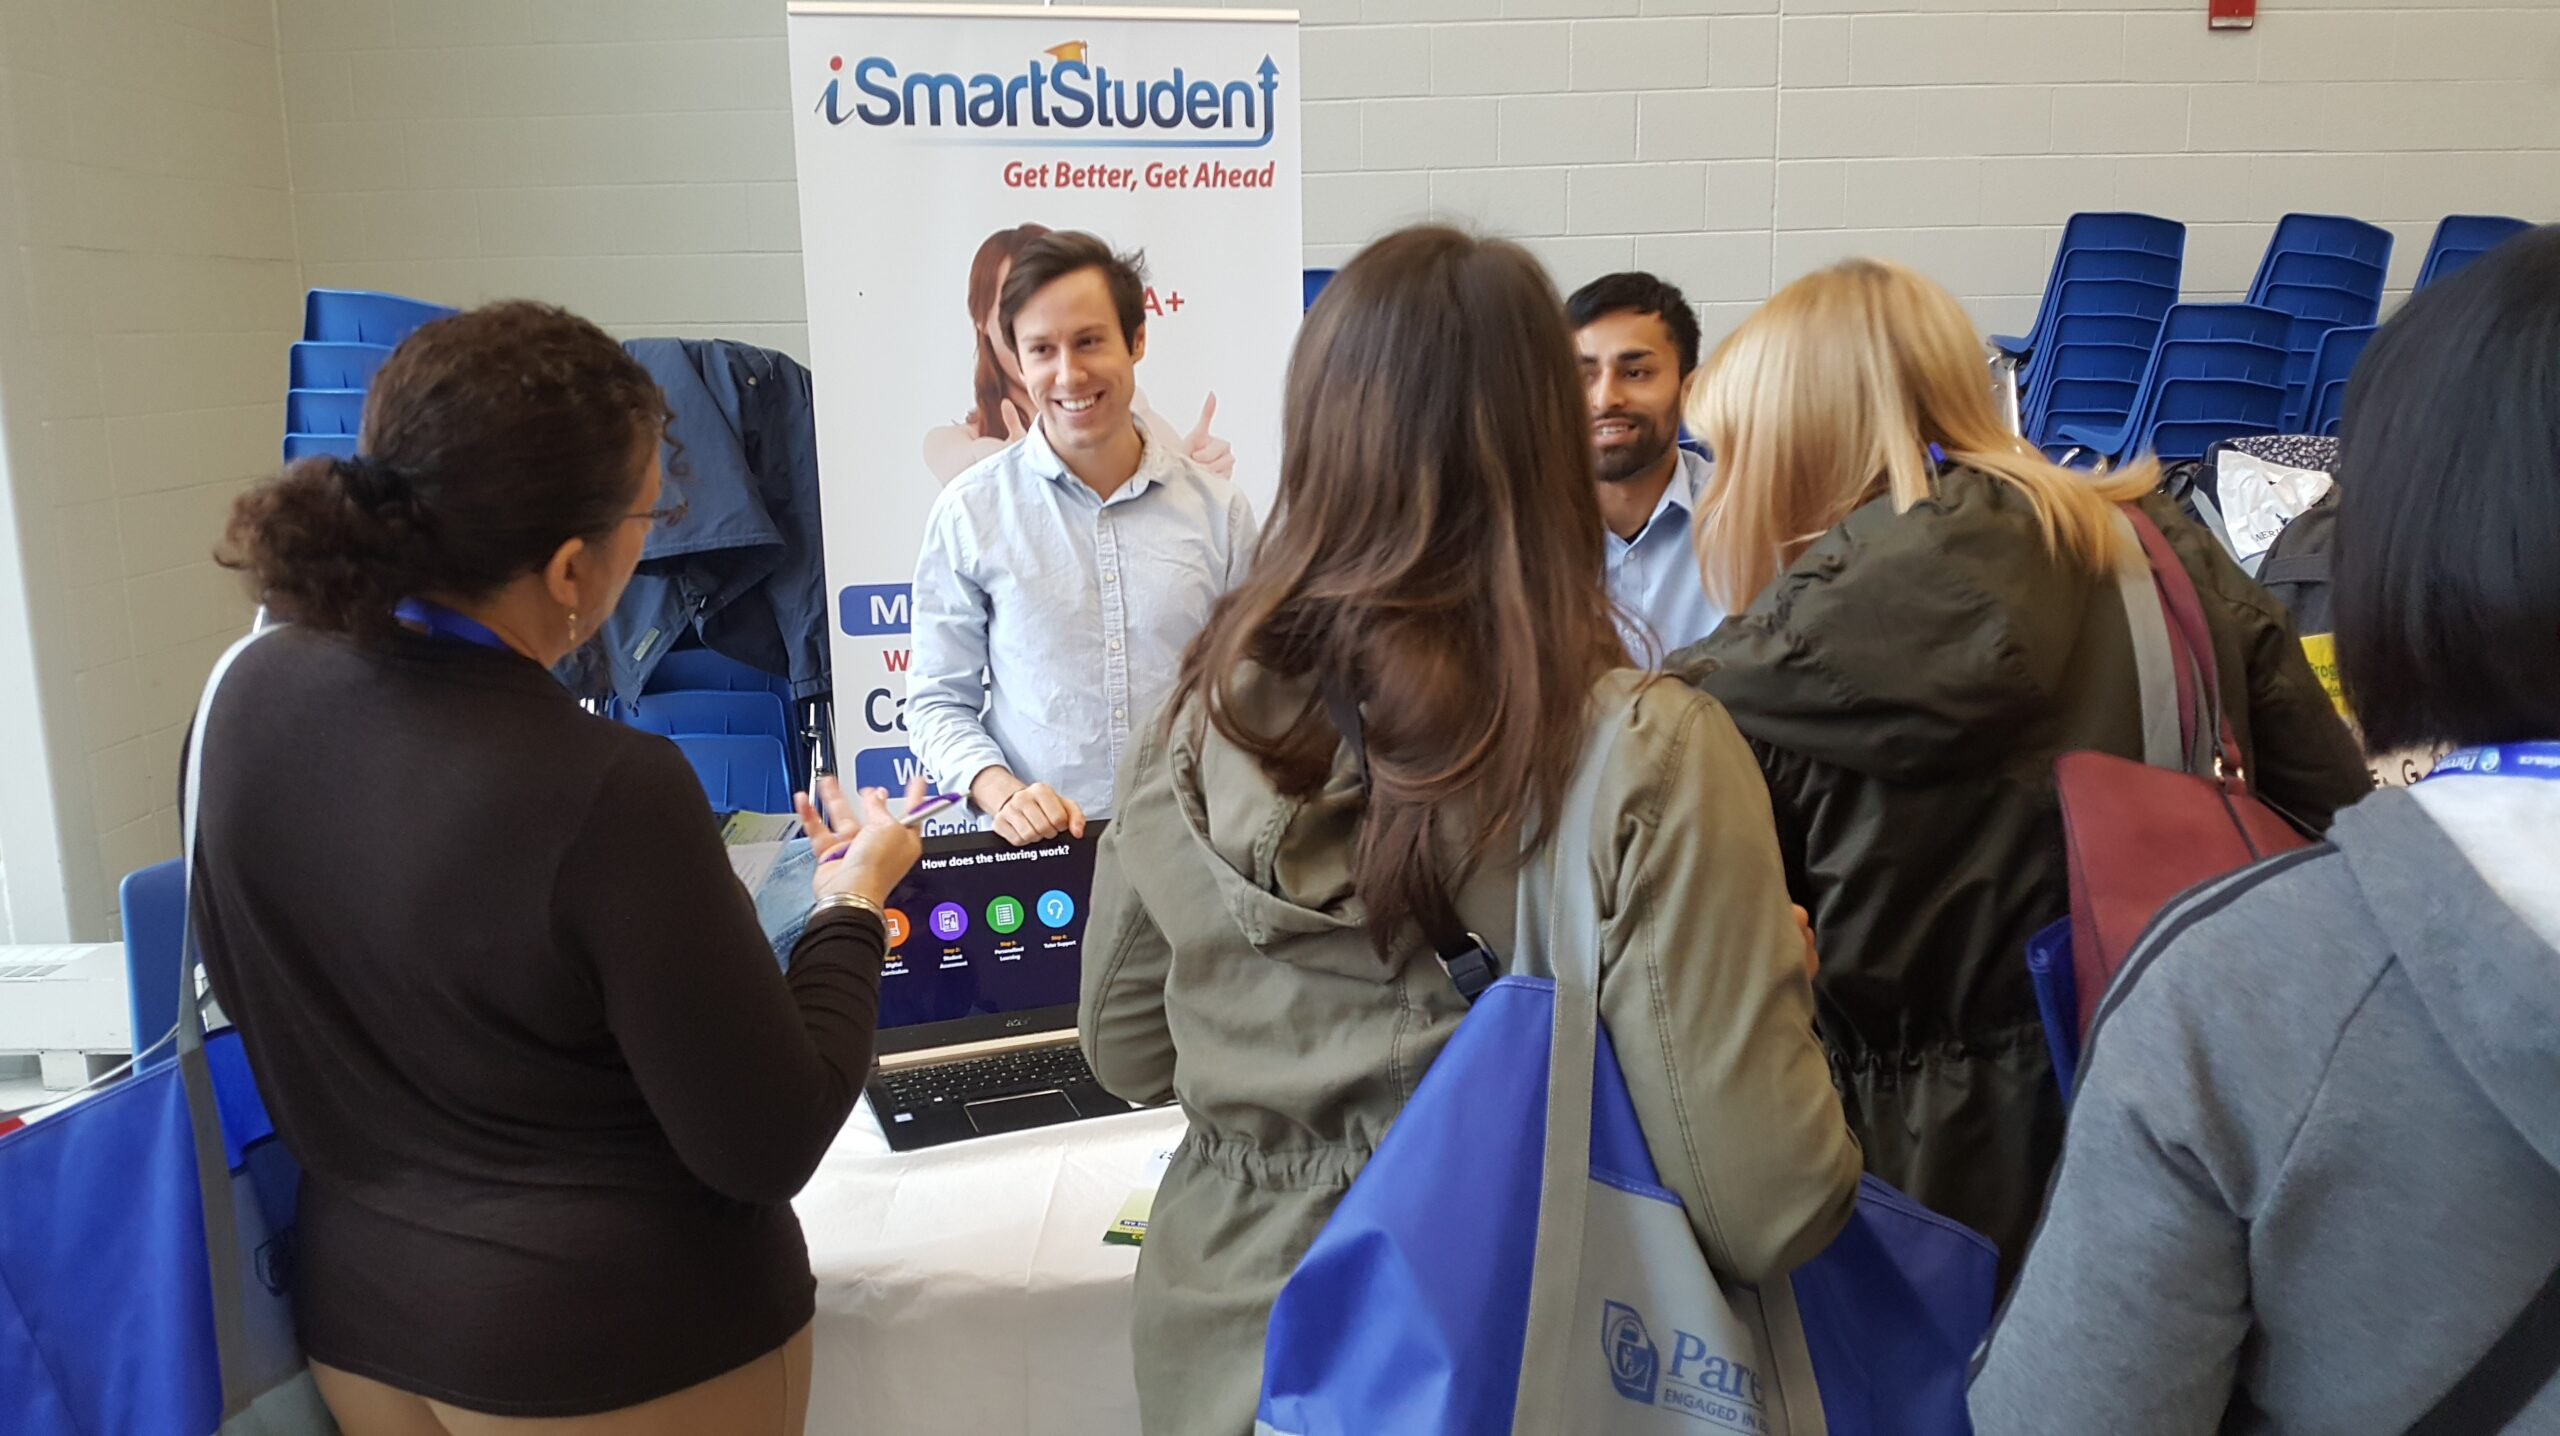 Toronto, October 28, 2017 <br/> iSmartStudent meets committed parents at the Dream Big Educational Conference